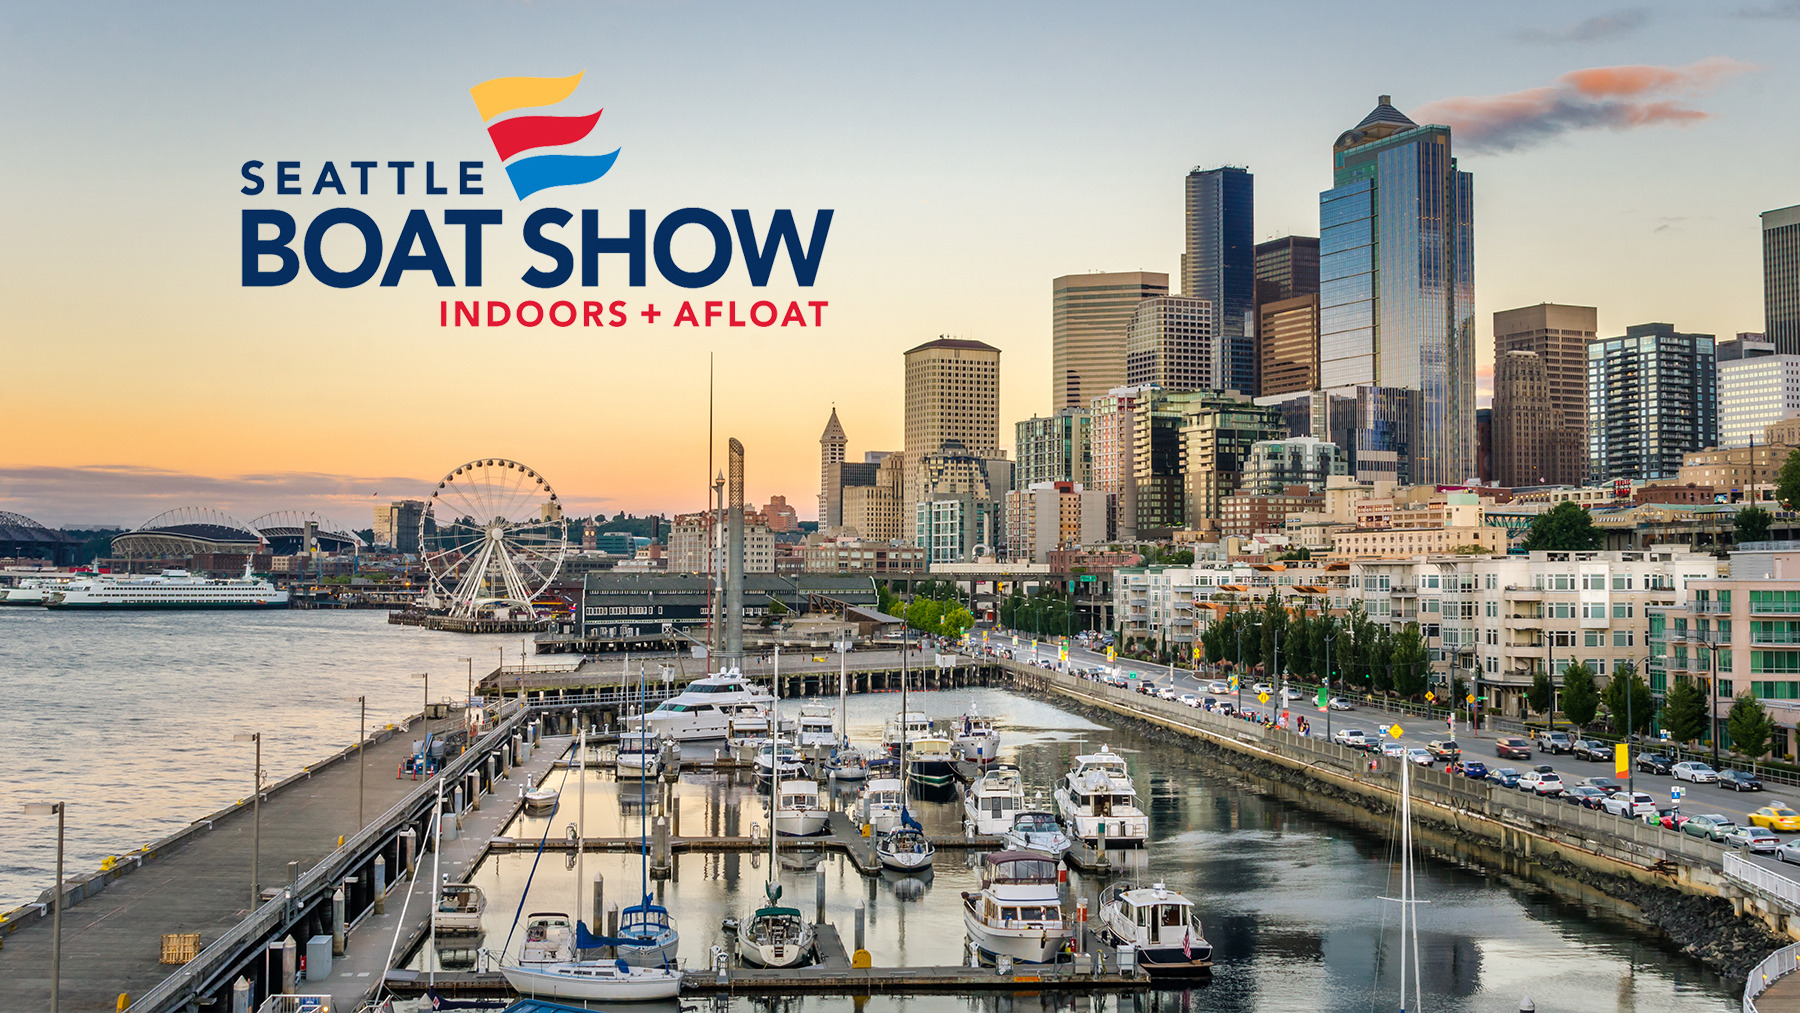 2019 Seattle Boat Show Indoors + Afloat